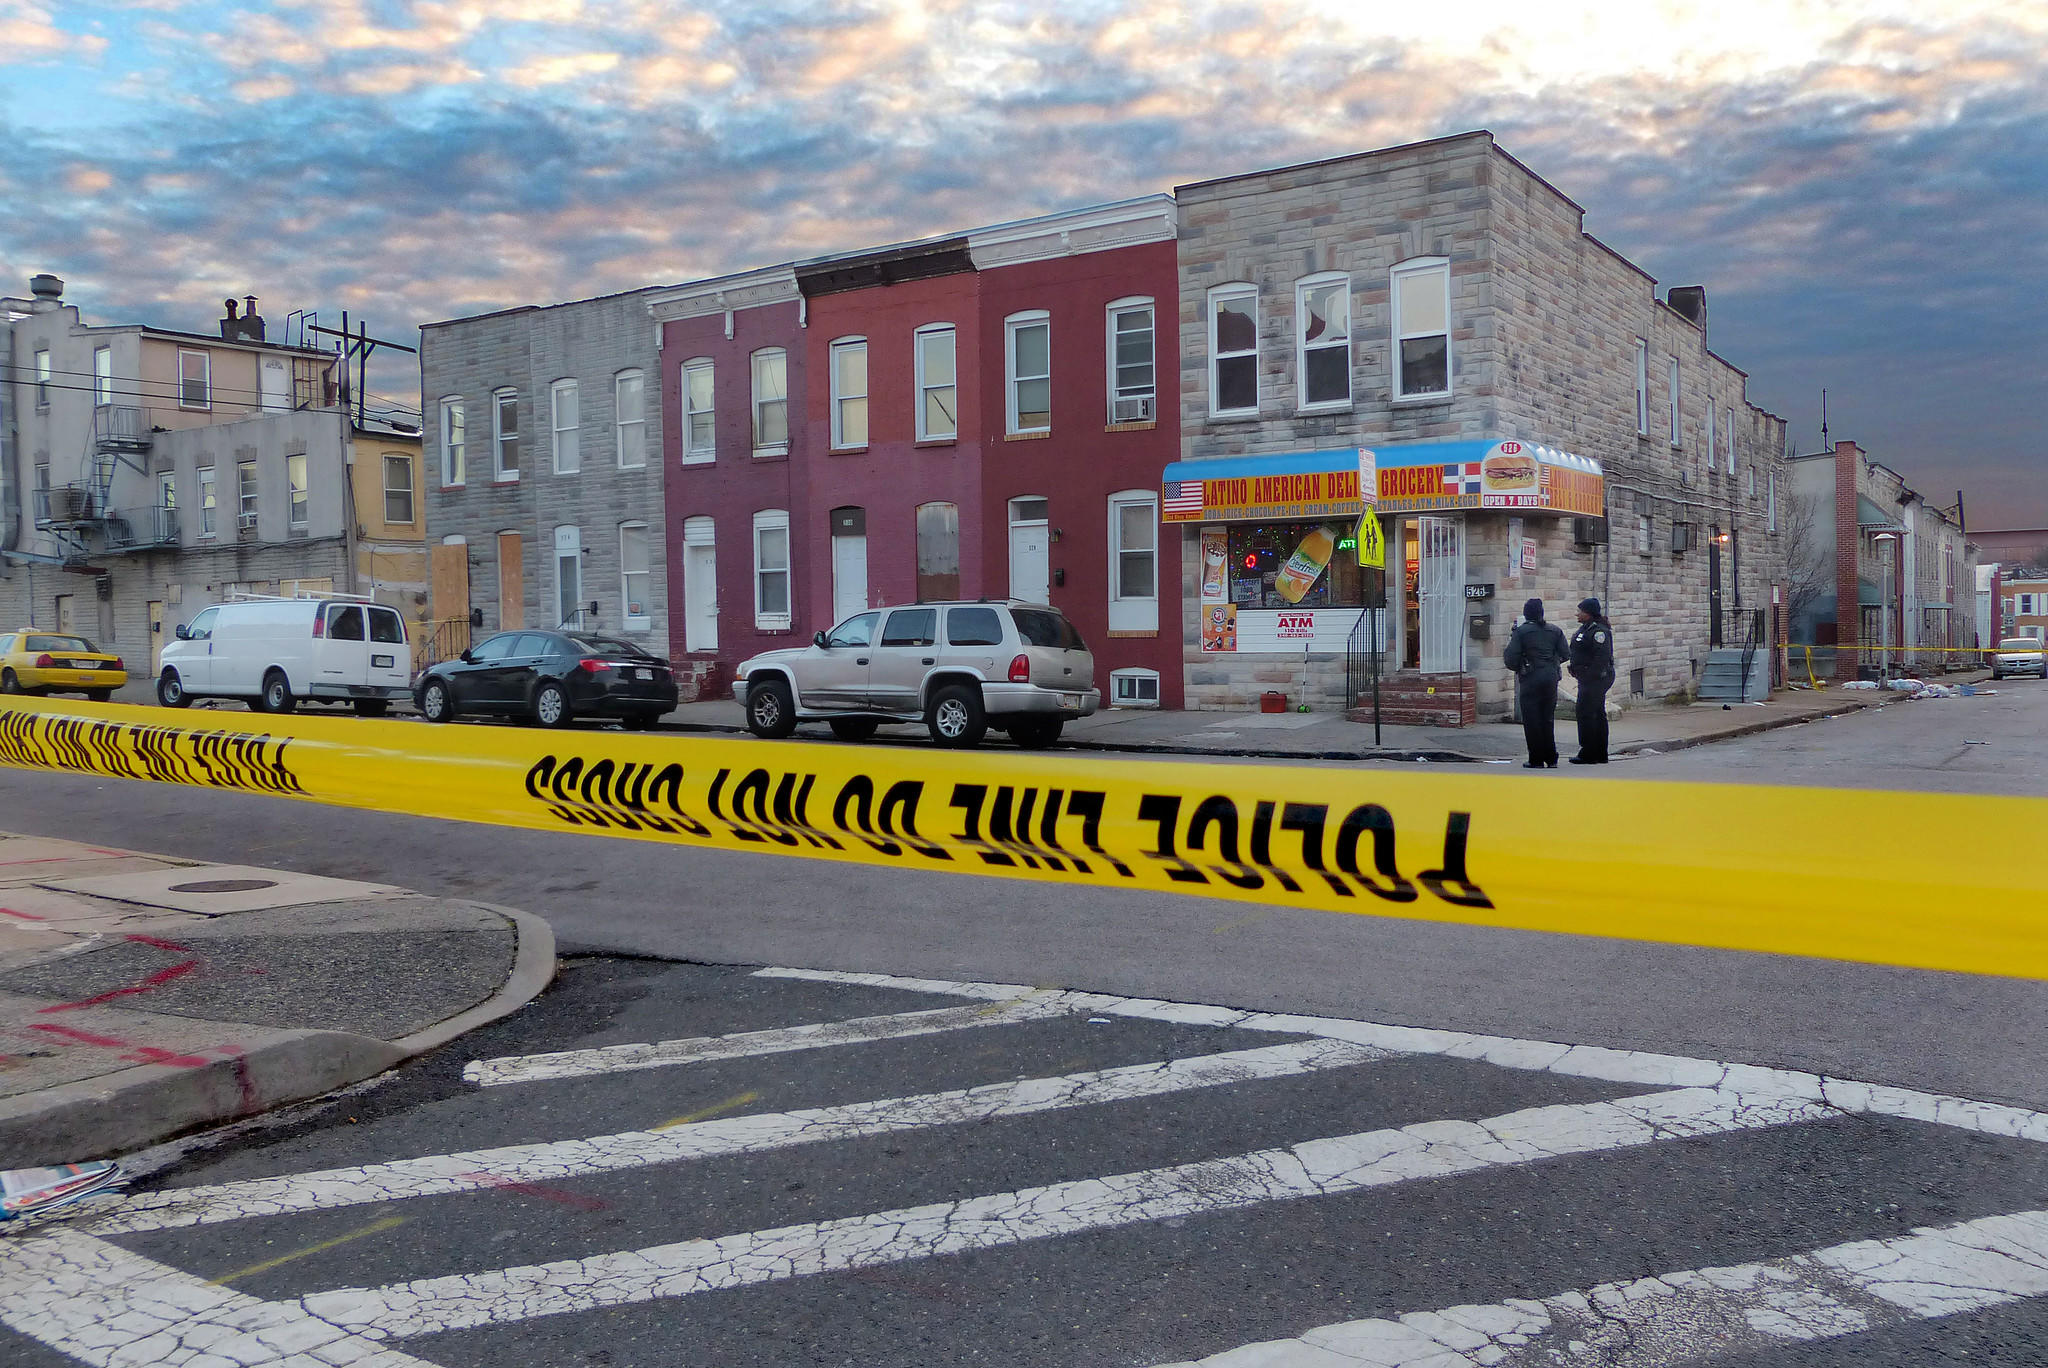 Crime scene tape stretches across Christian Street at the scene of bloodshed following a shooting at a Southwest Baltimore corner store.